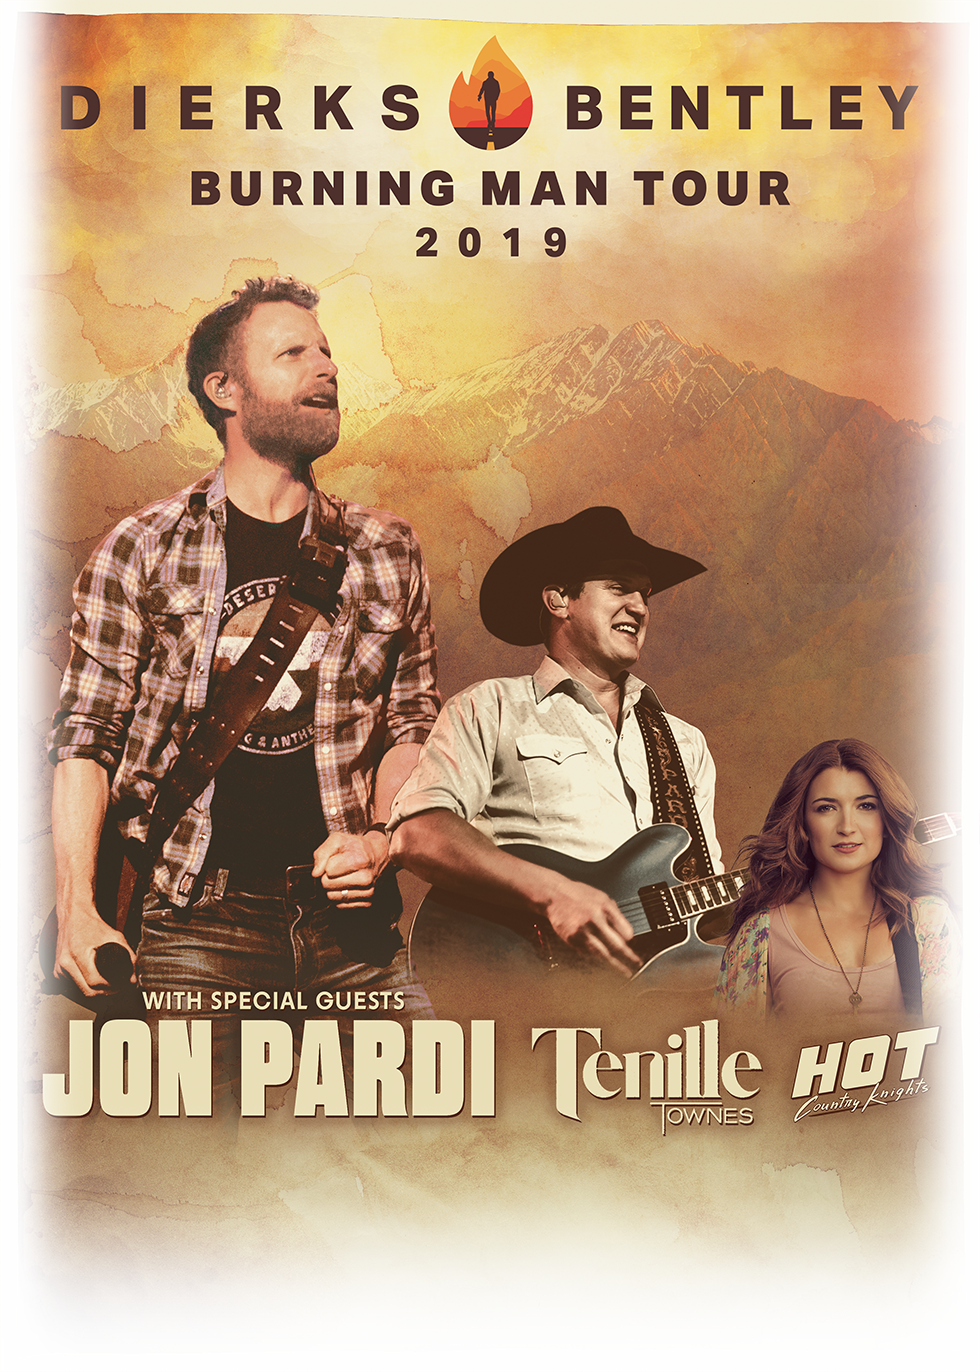 Dierks Bentley Winter Tour 2019